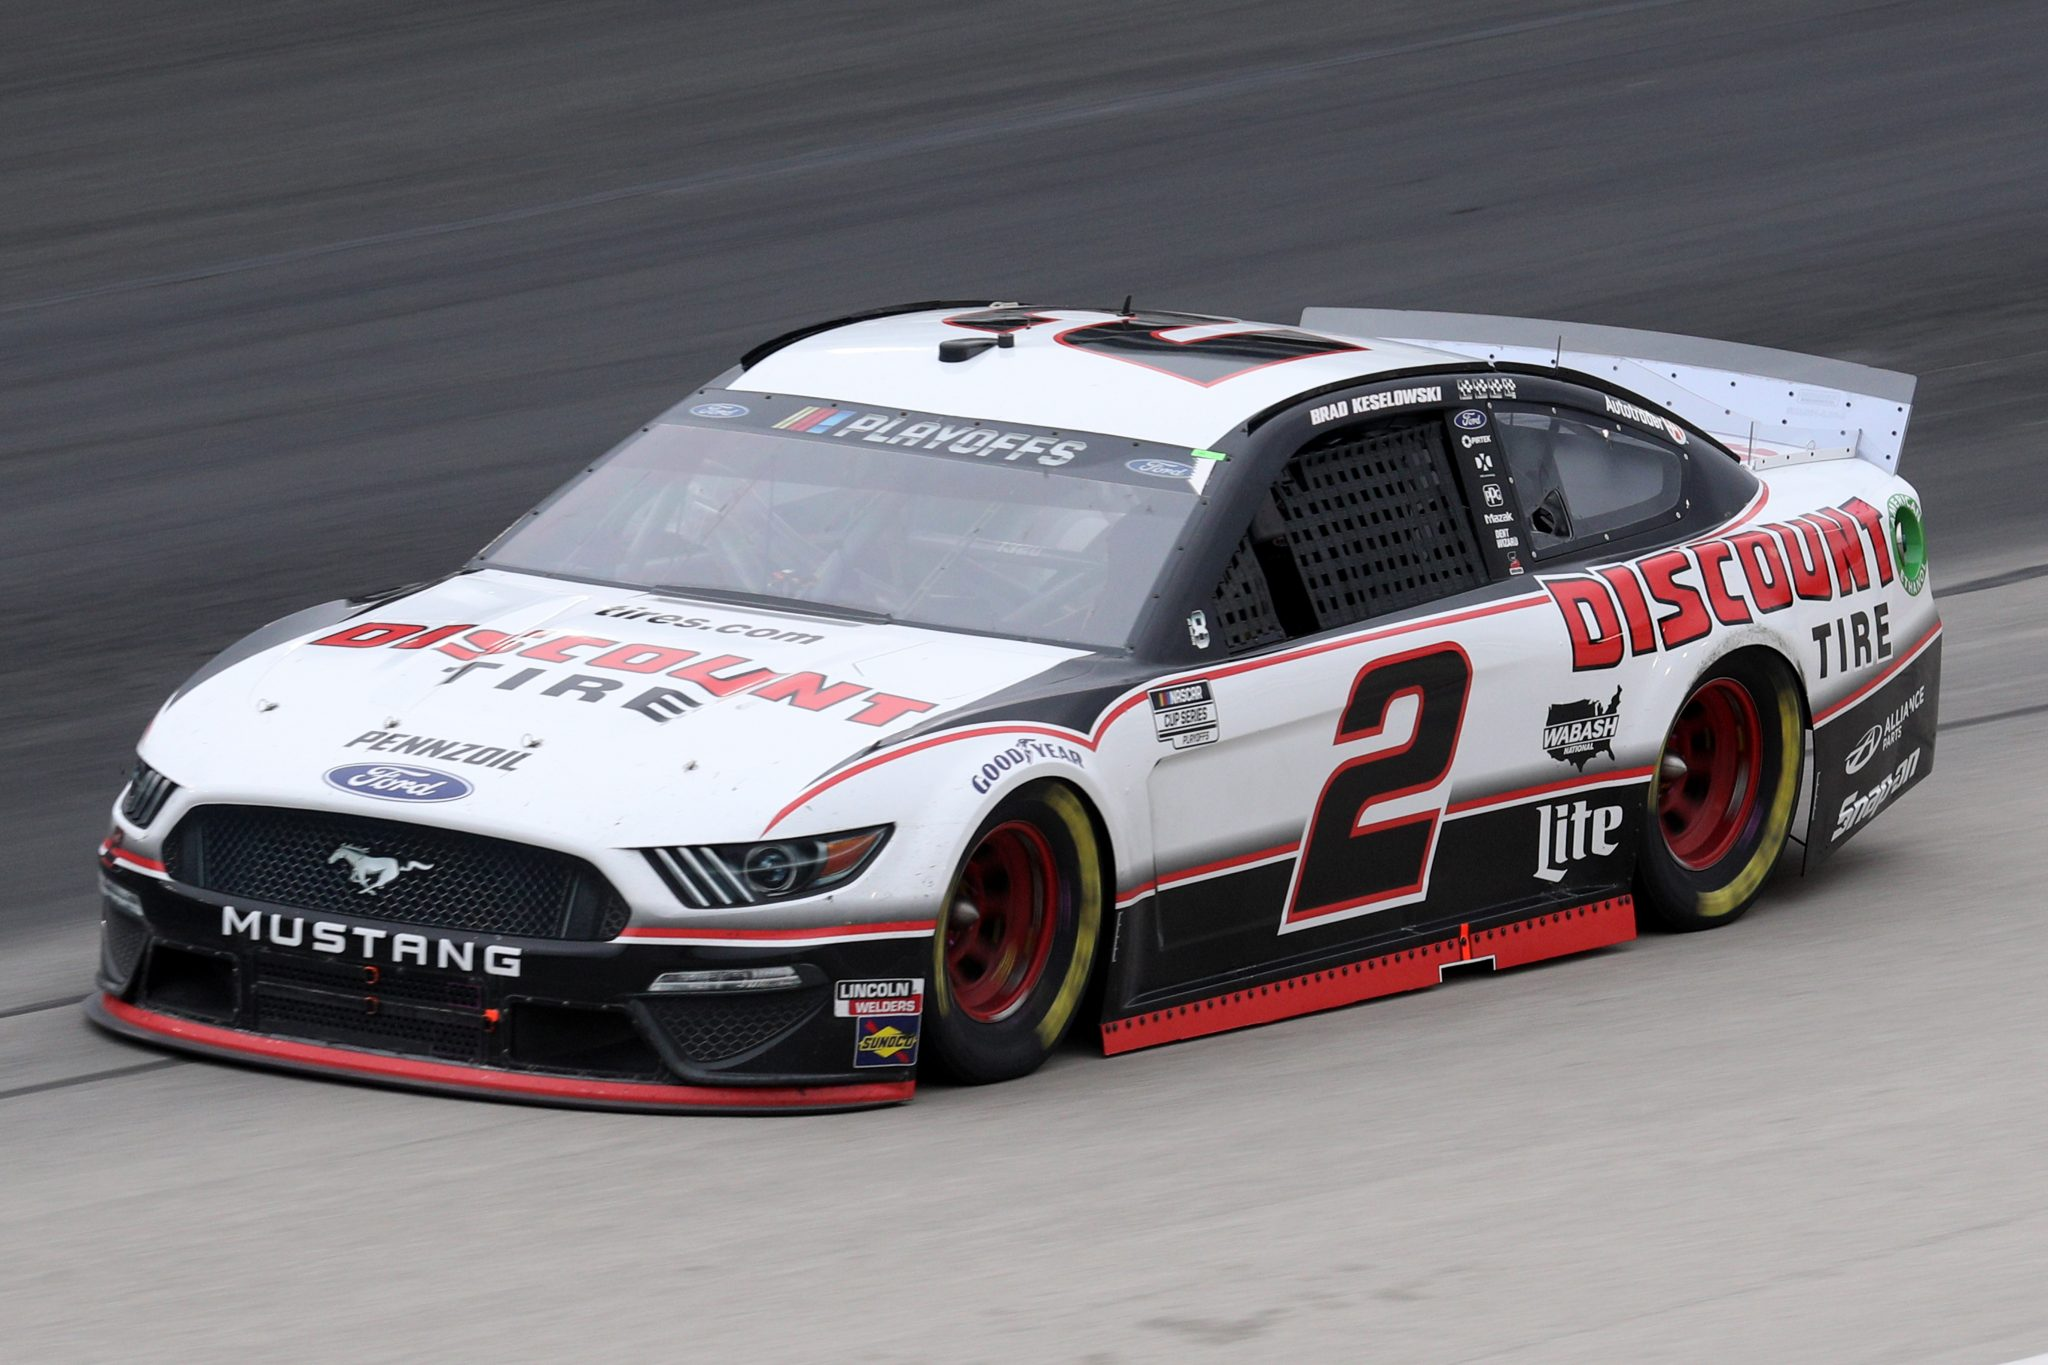 FORT WORTH, TEXAS - OCTOBER 28: Brad Keselowski, driver of the #2 Discount Tire Ford, drives during the NASCAR Cup Series Autotrader EchoPark Automotive 500 at Texas Motor Speedway on October 28, 2020 in Fort Worth, Texas. (Photo by Chris Graythen/Getty Images) | Getty Images